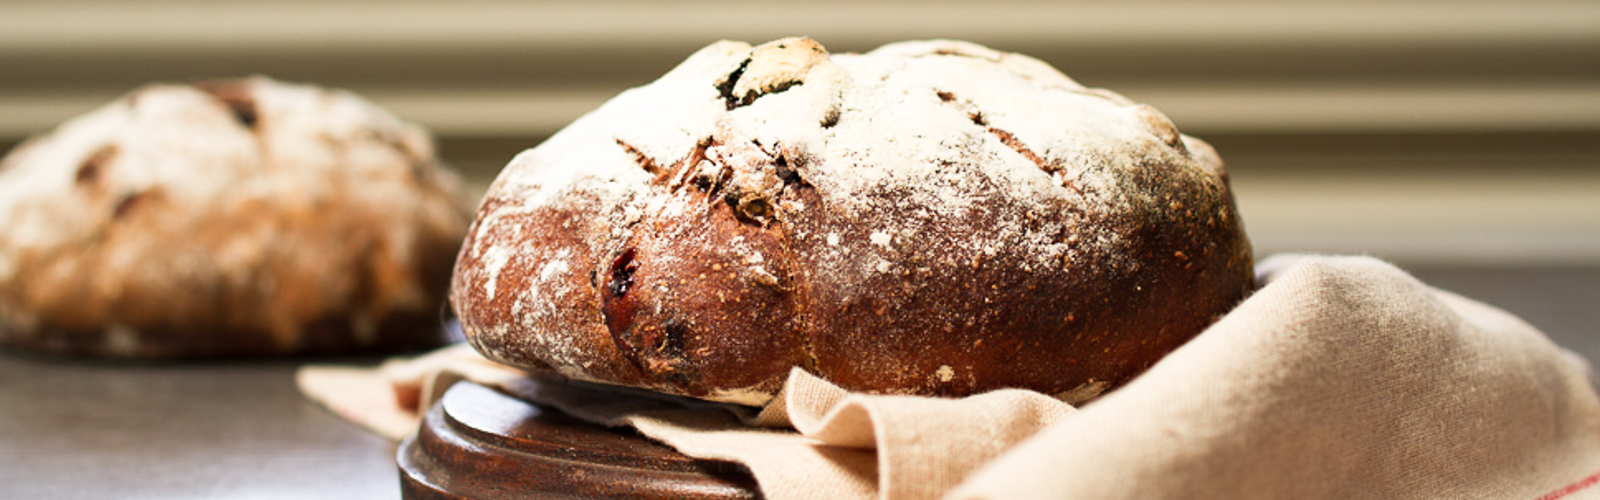 <p>Cocoa powder and sour cherries lend decadence to this rustic bread while Diced Dried Plums provide subtle sweetness. The bread complements a wide number of cheeses, including cream cheeses, chèvre, Gruyère, and pecorino. Because this bread dough incorporates a pre-fermented sponge, make the sponge a day ahead and refrigerate it overnight for best results.</p>